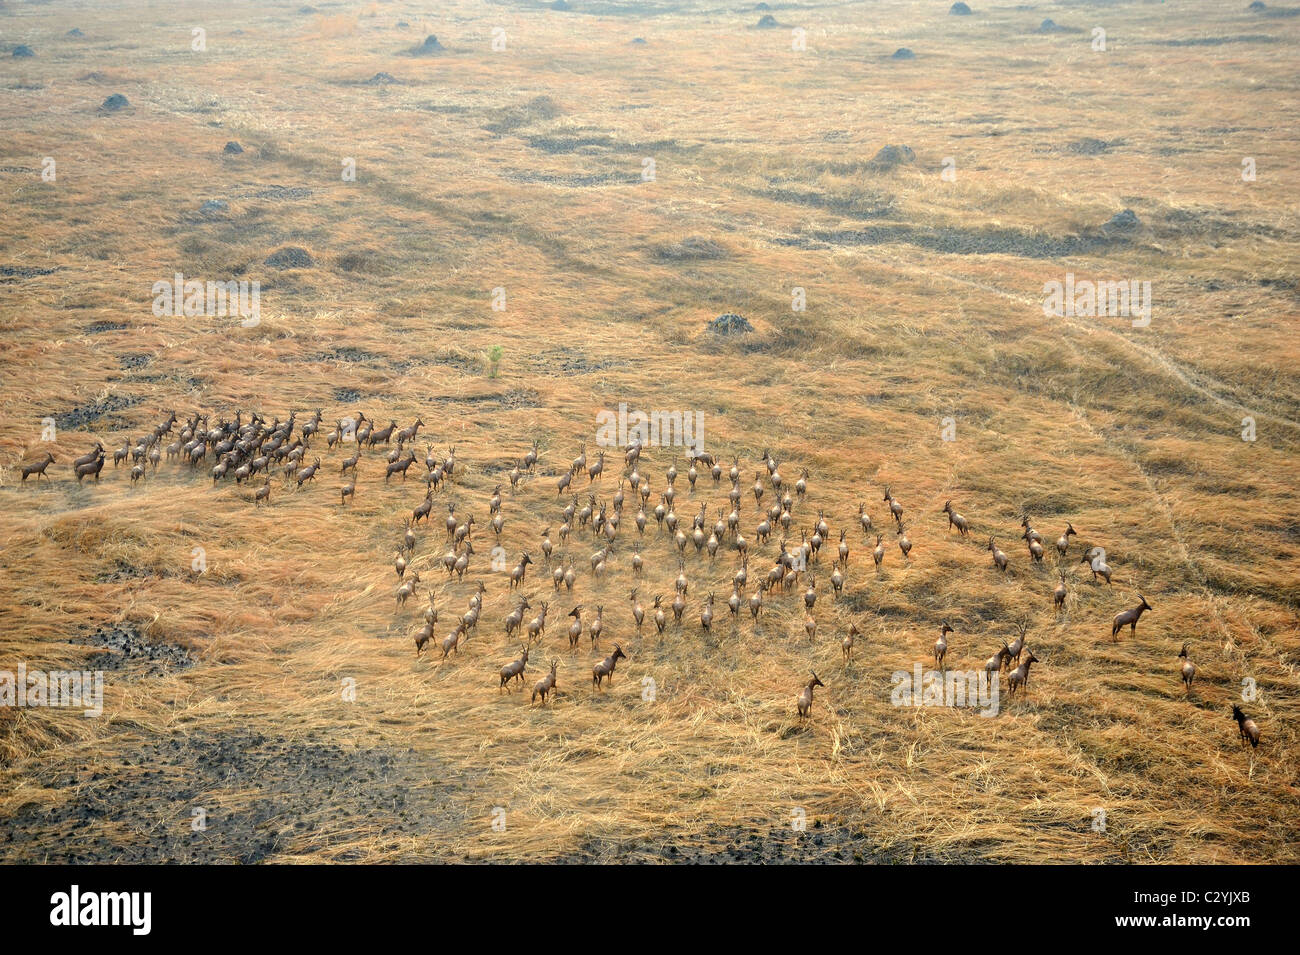 Herd of Tiang (Damaliscus tiang) in grassland close to seasonal flood areas of Sudd swamp, South Sudan - Stock Image